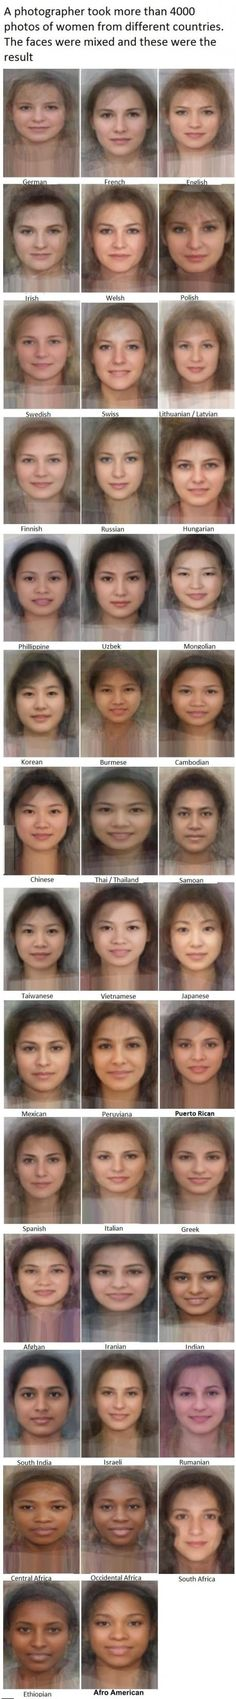 Faces from around the world.